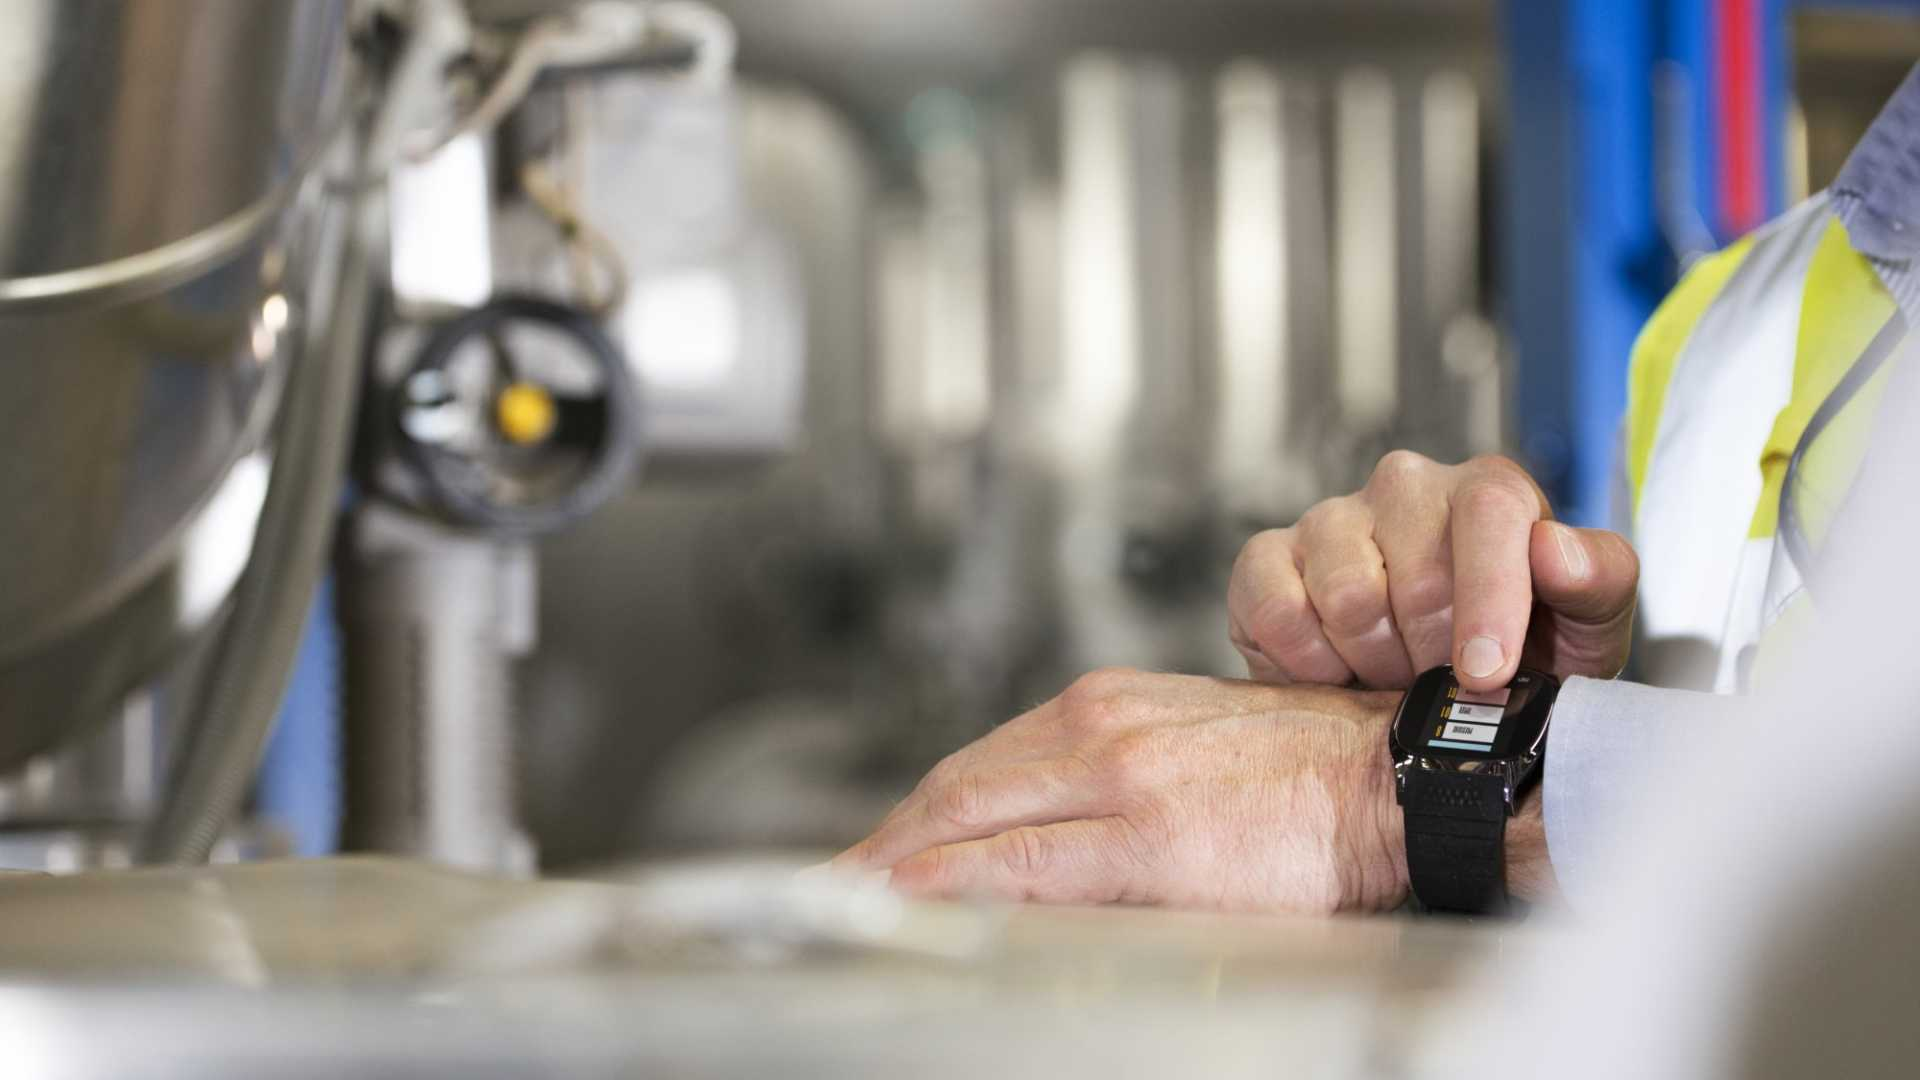 Wearables Are Coming to the Workplace. Here's How They Will Enhance Our Work Performance